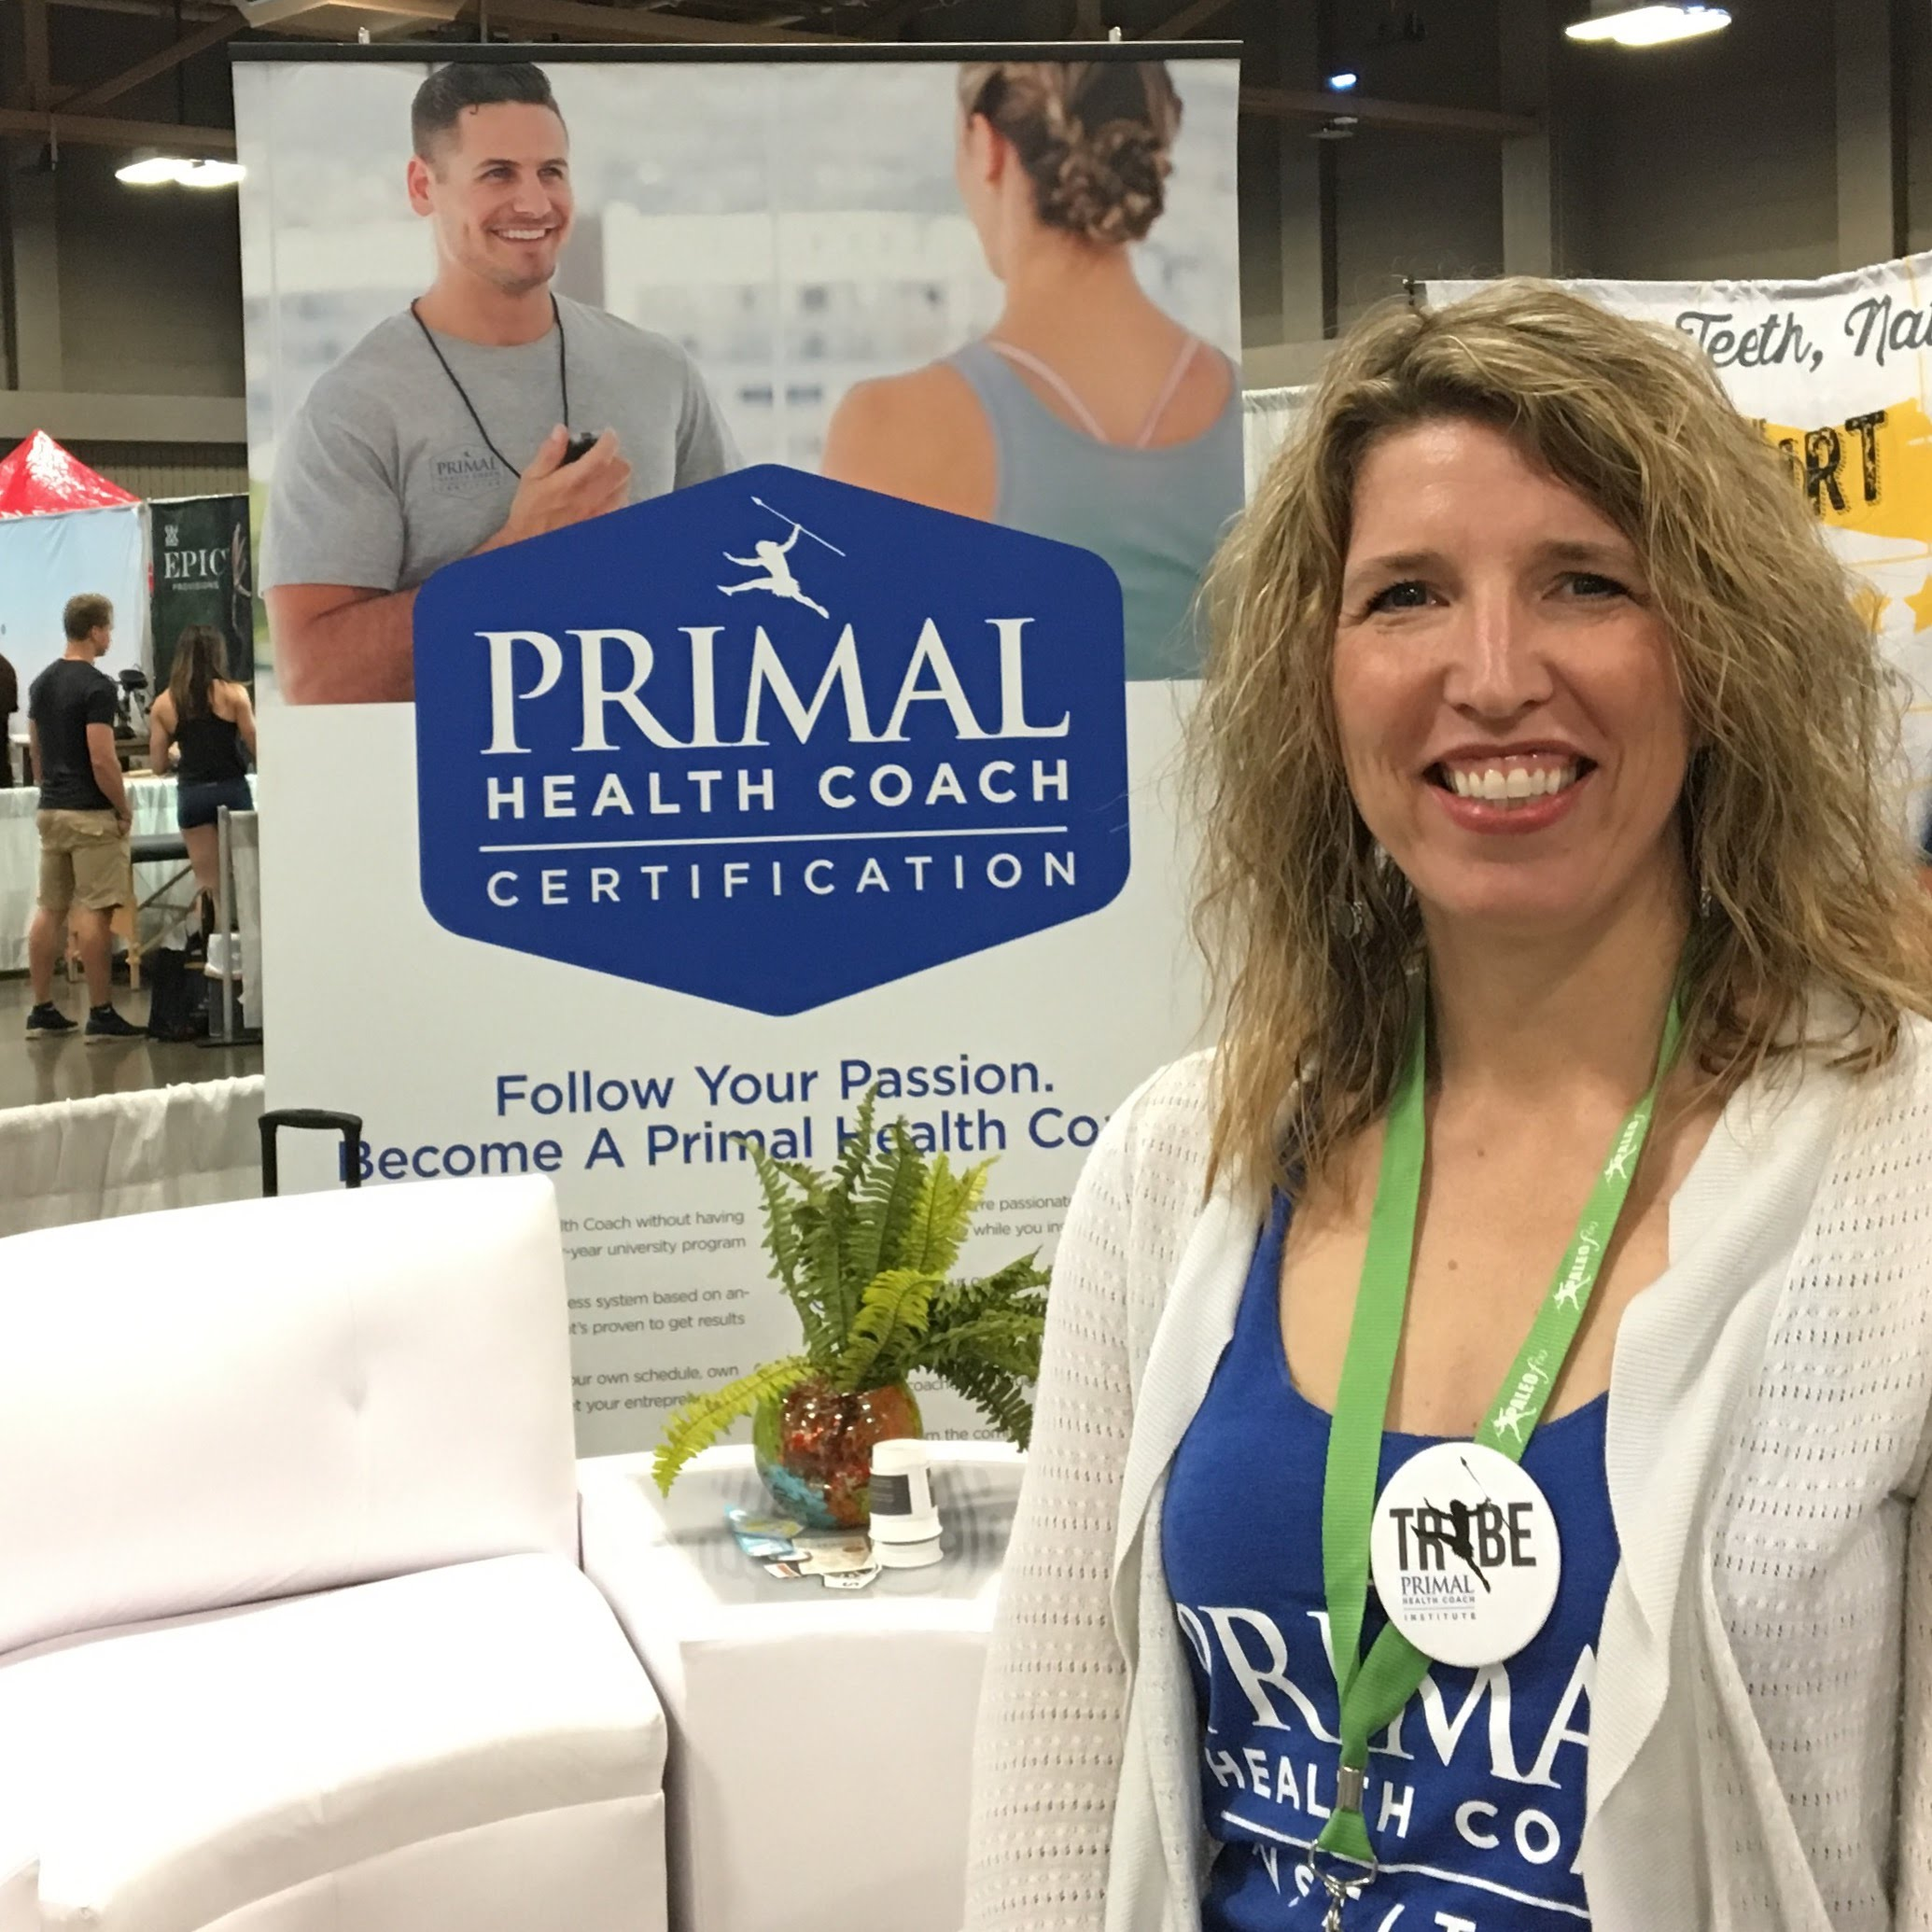 Pictured here at the Primal Health Coach Institute booth at the 2018 Paleo f(x) Conference in Austin, TX